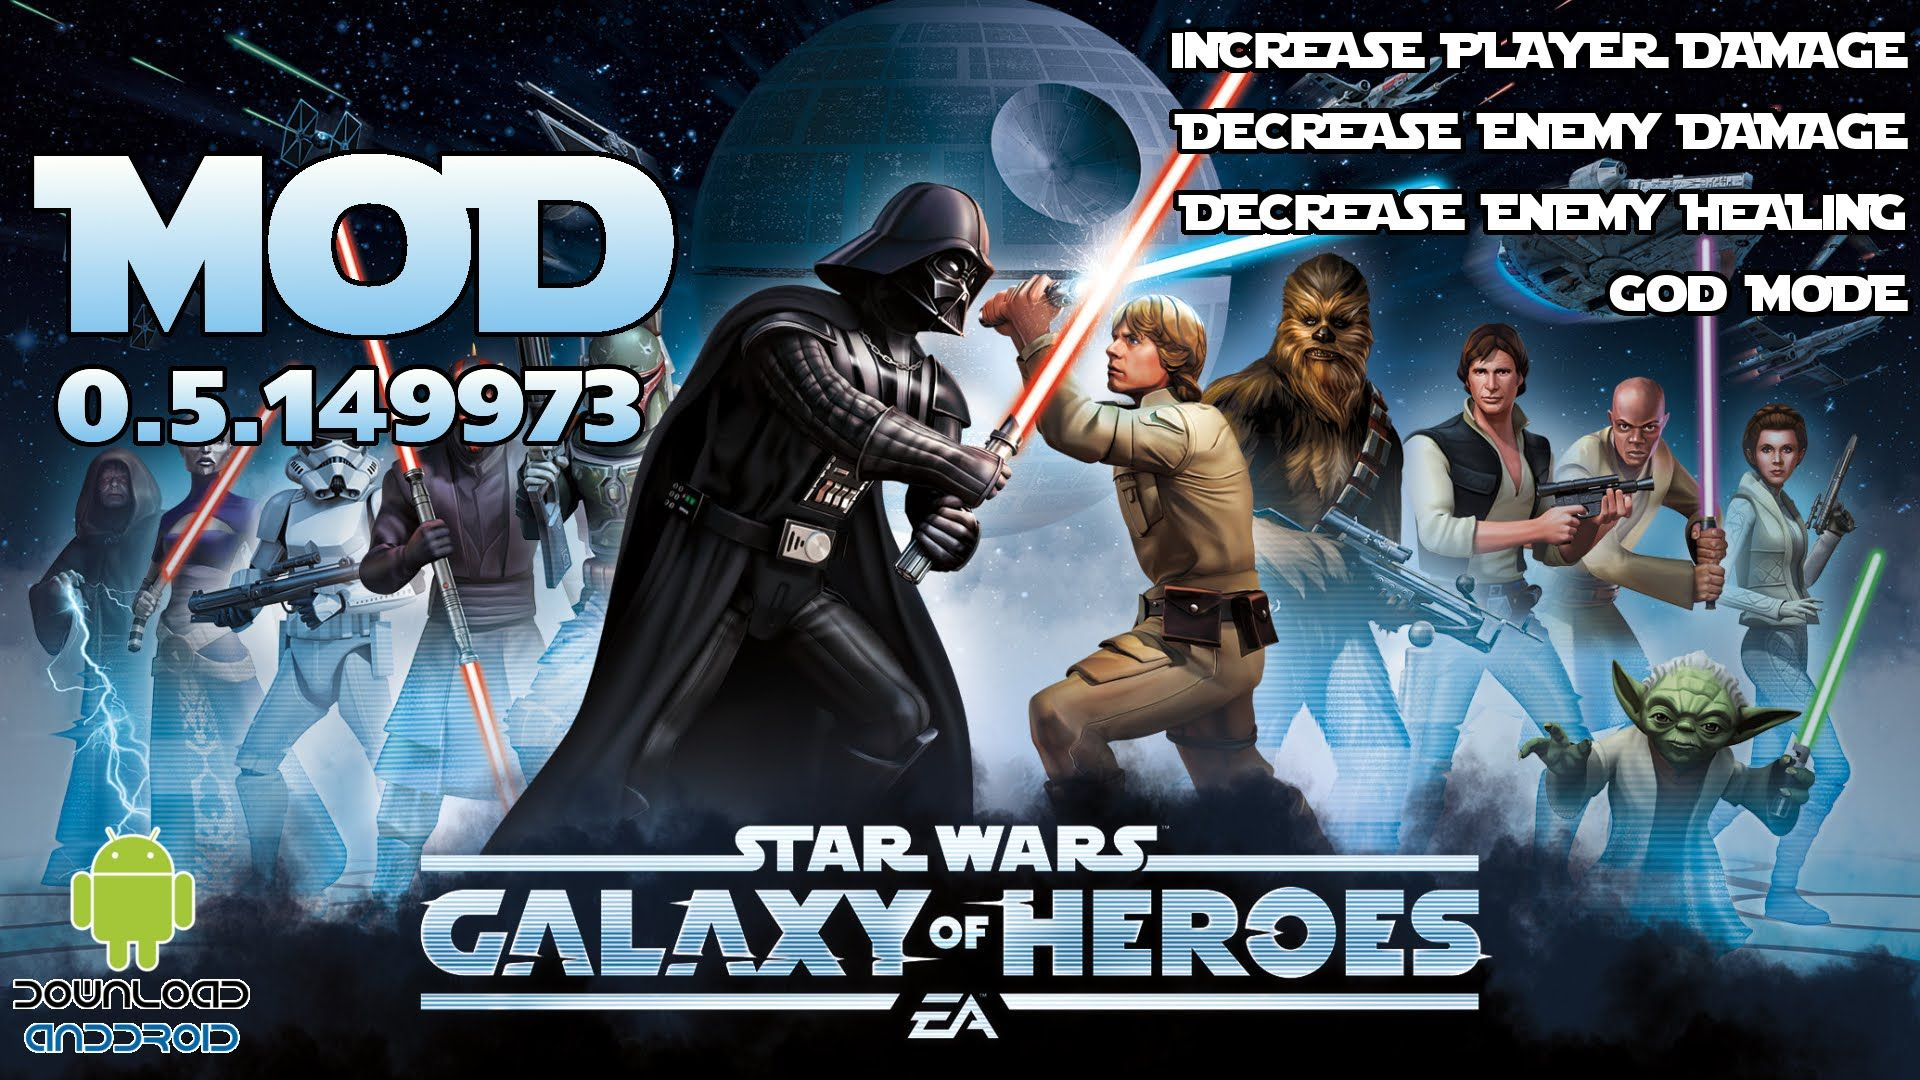 Star Wars Galaxy of Heroes Hack and Cheats 2018 - How to get